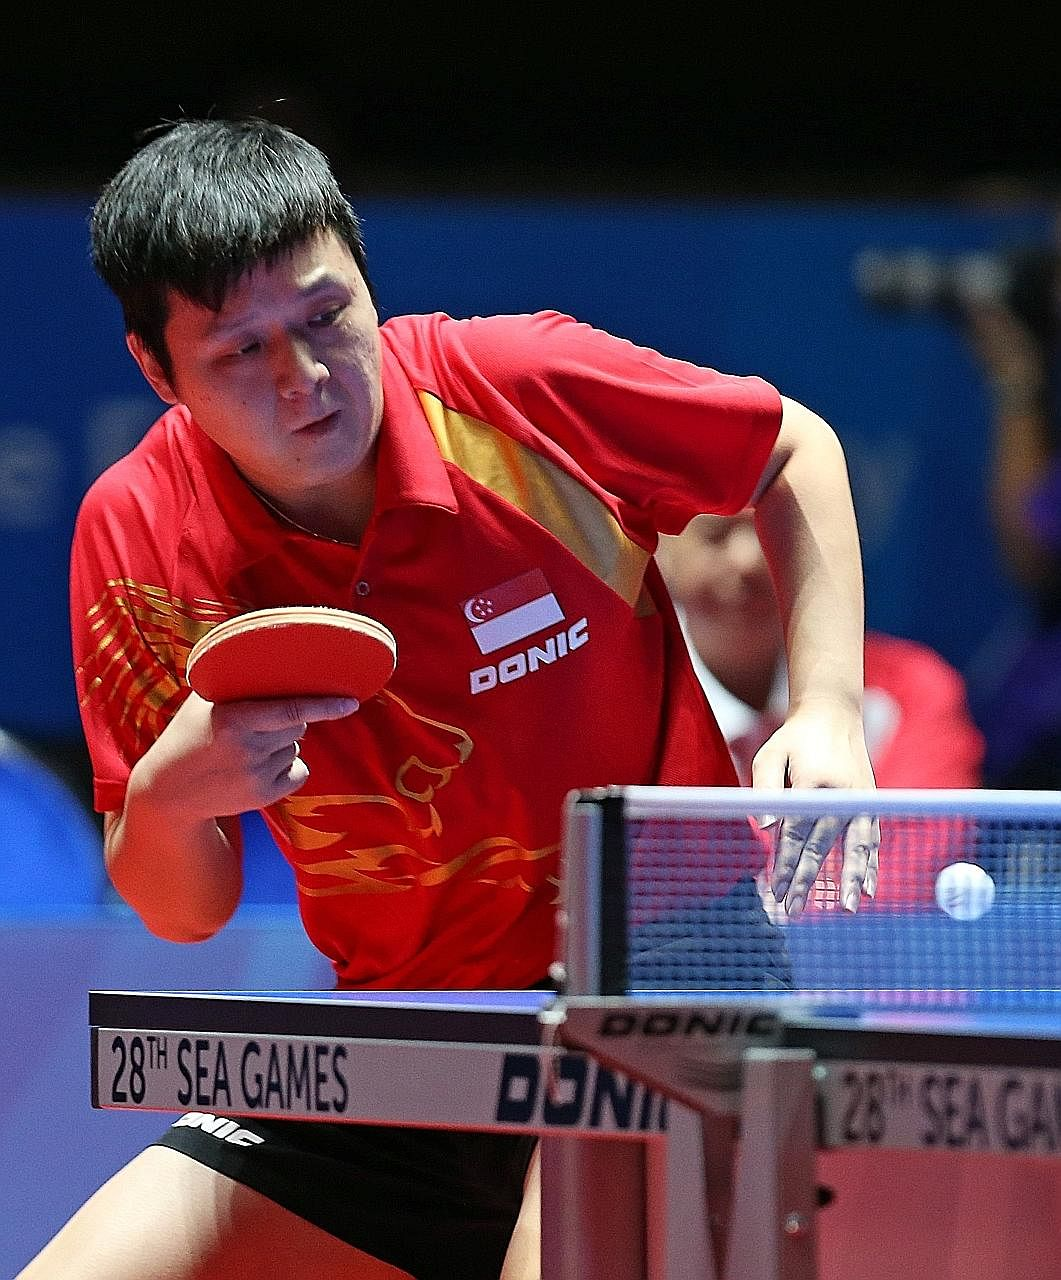 Su Fengxian (above), mother of former national table tennis player Li Hu (left), is accused of bribing STTA technical director Loy Soo Han, so as to influence an STTA investigation into her son.